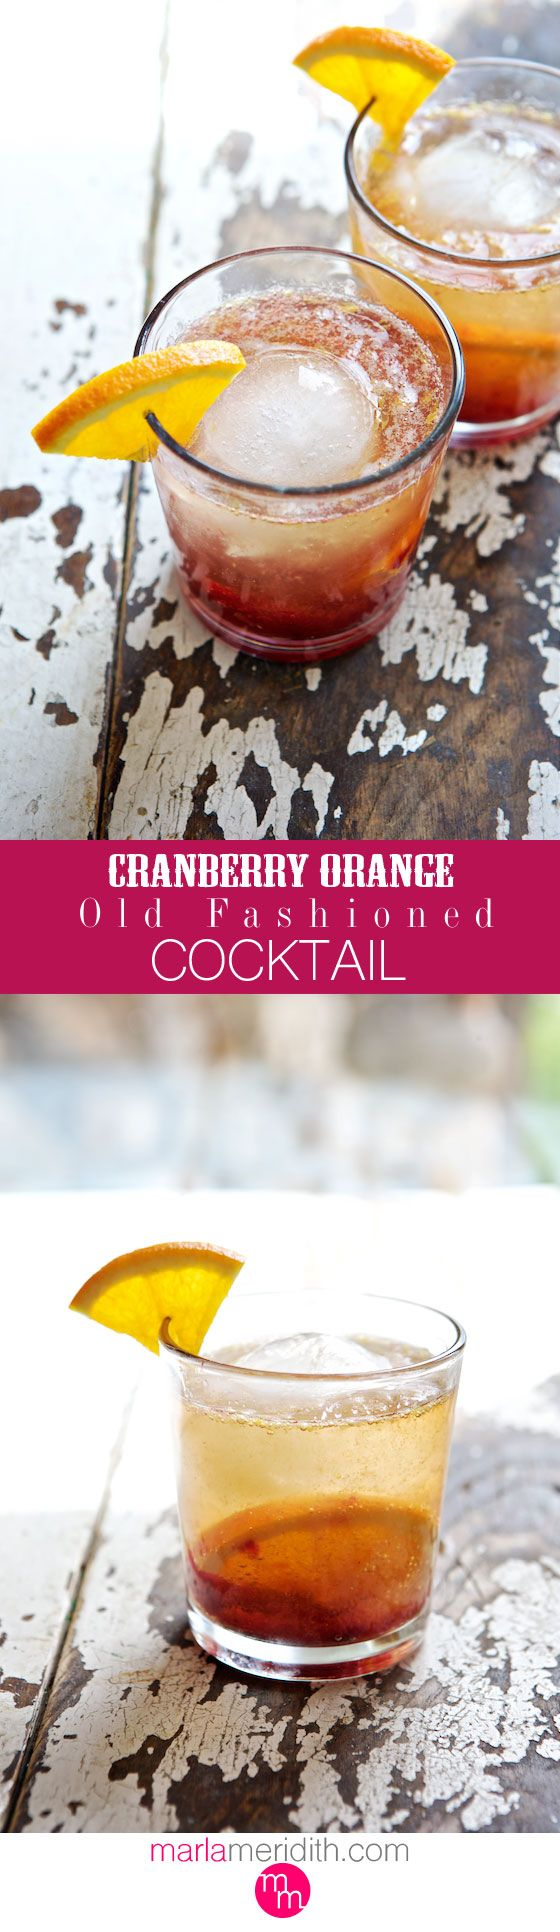 ... old fashioned cocktail old fashioned recipes cranberries orange recipe